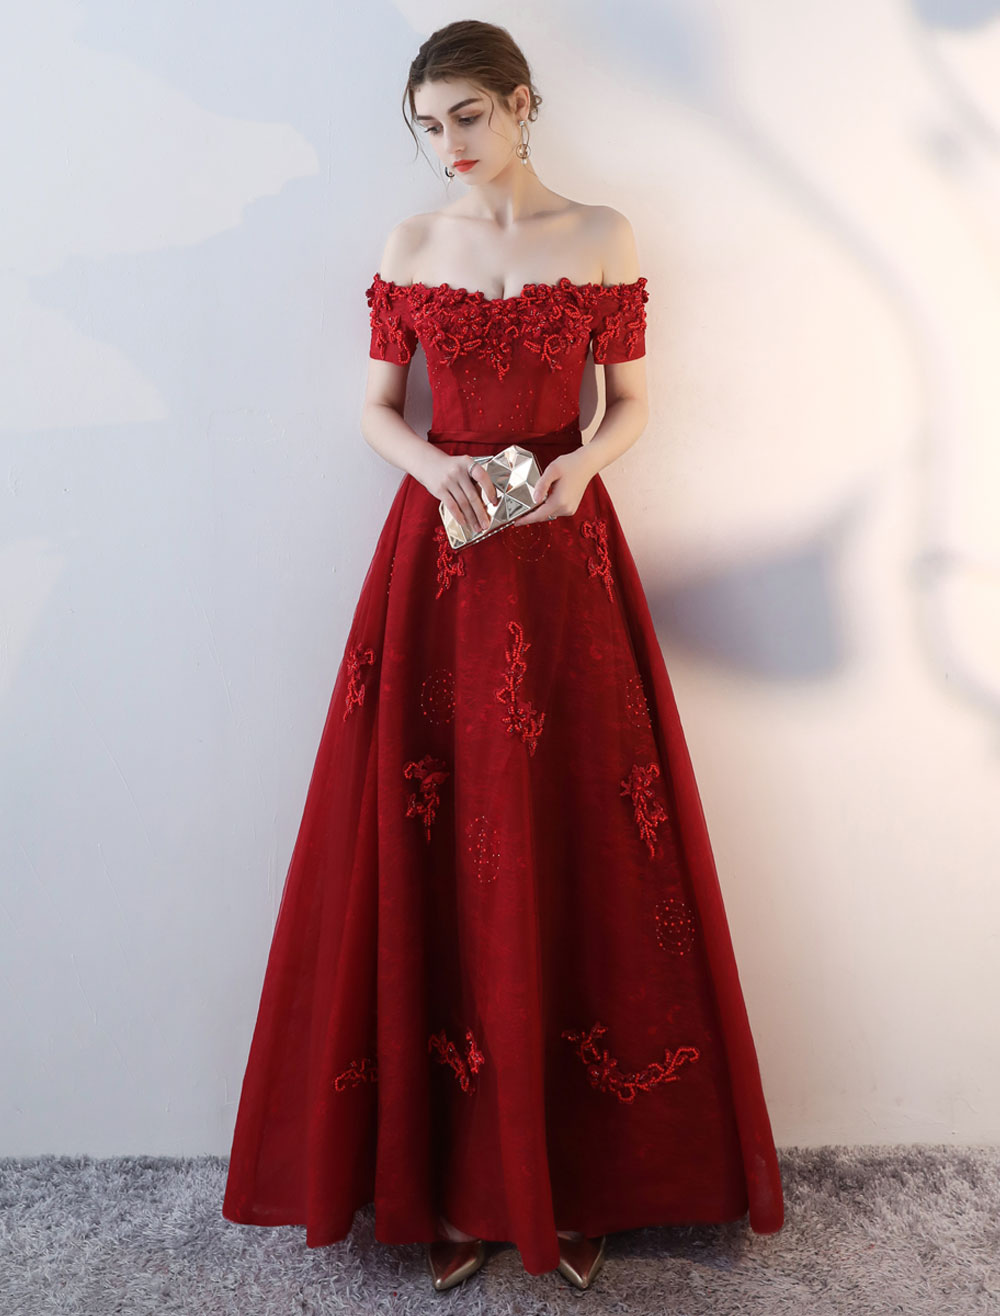 Buy Prom Dresses Long Burgundy Off The Shoulder Prom Dress Lace Applique Heavy Beading Sash Floor Length Formal Evening Dress for $175.99 in Milanoo store